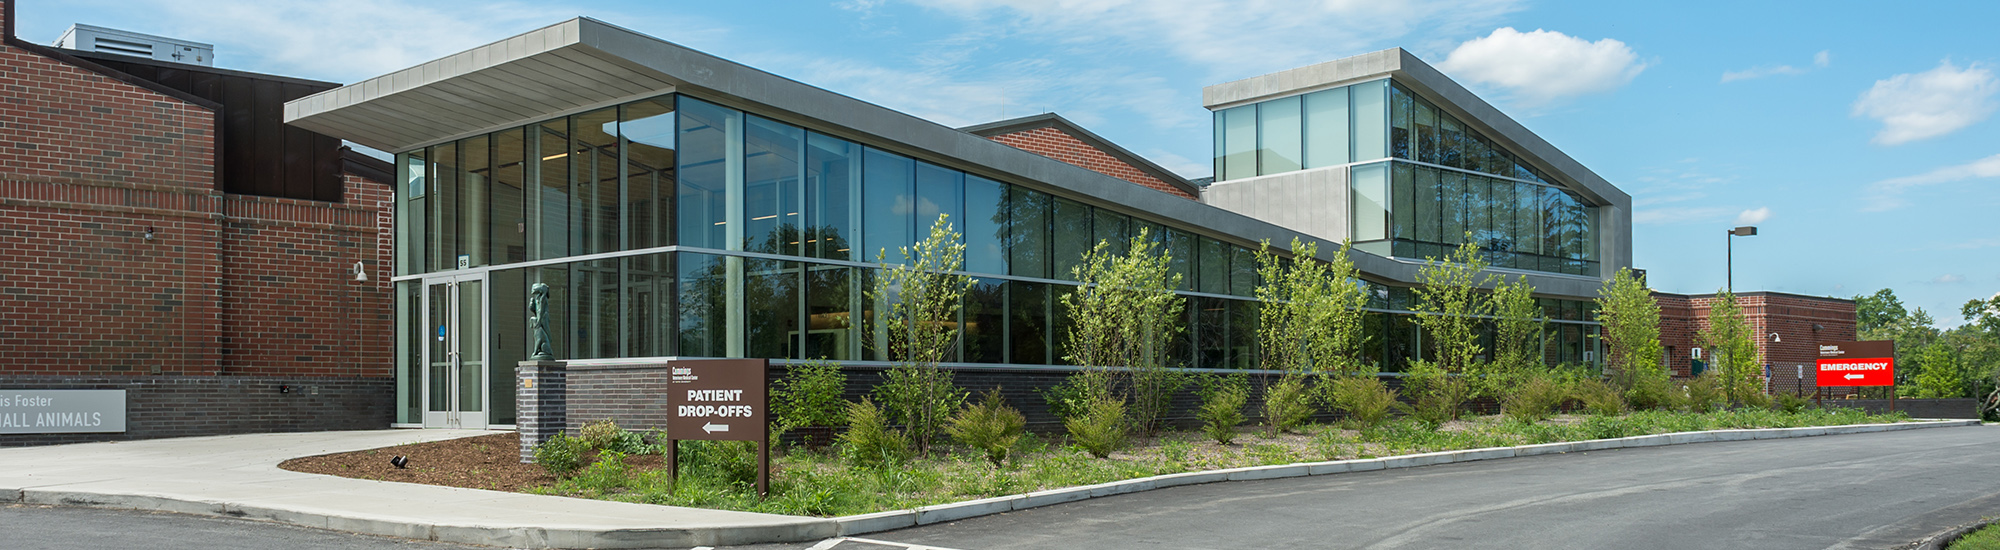 About Cummings Veterinary Medical Center